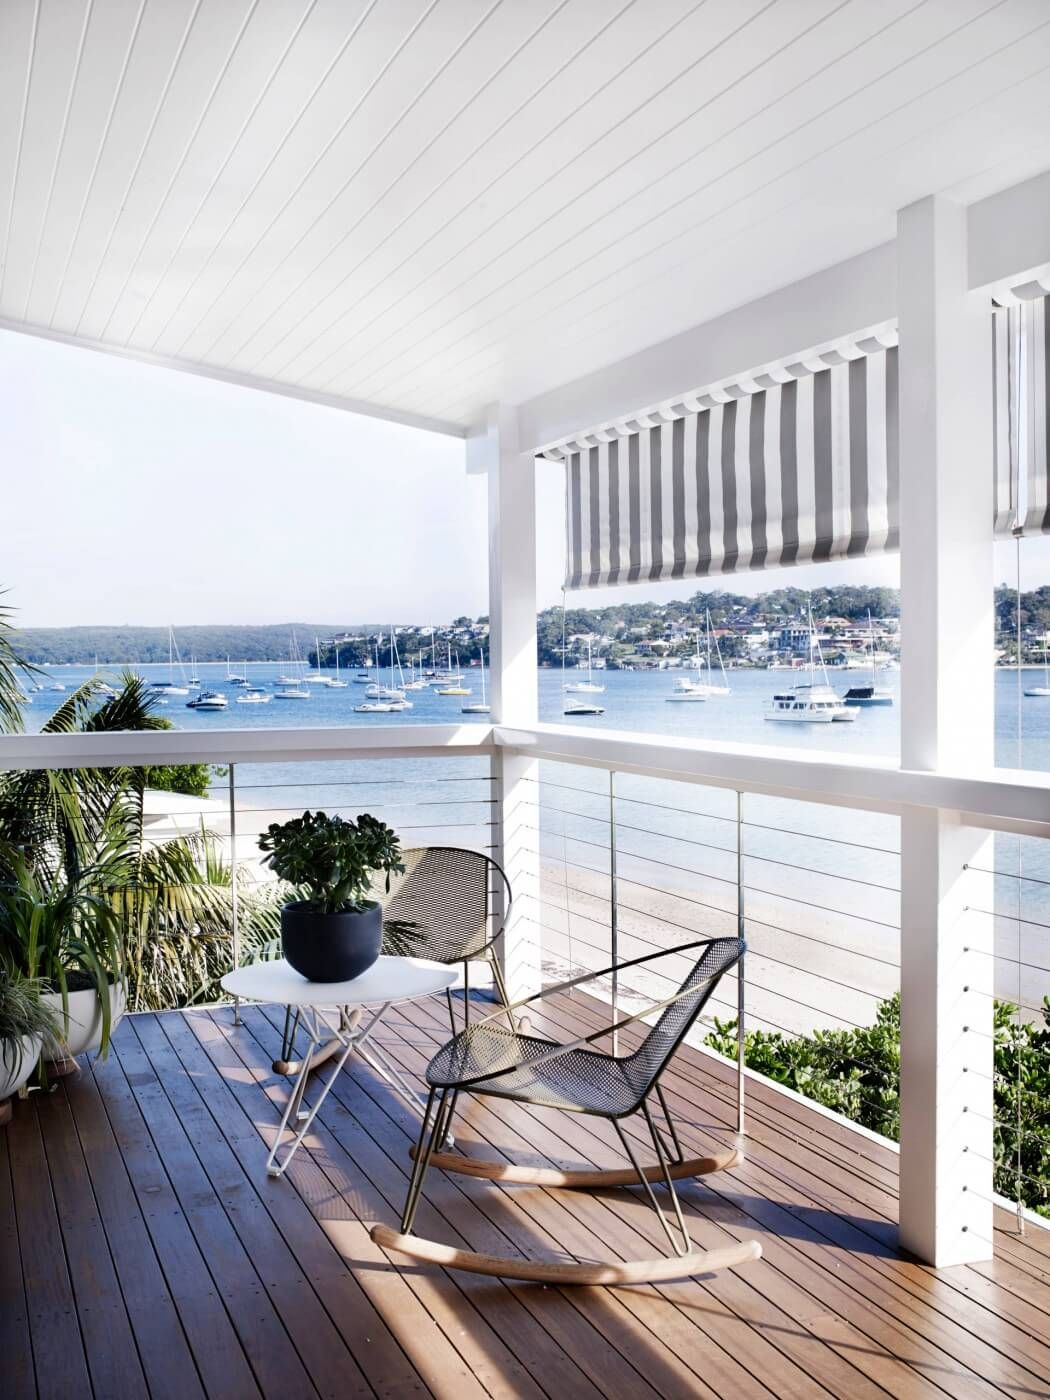 Awning Outdoor Furniture If Only I Had That View Cronulla Residence By Amber Road Homeadore